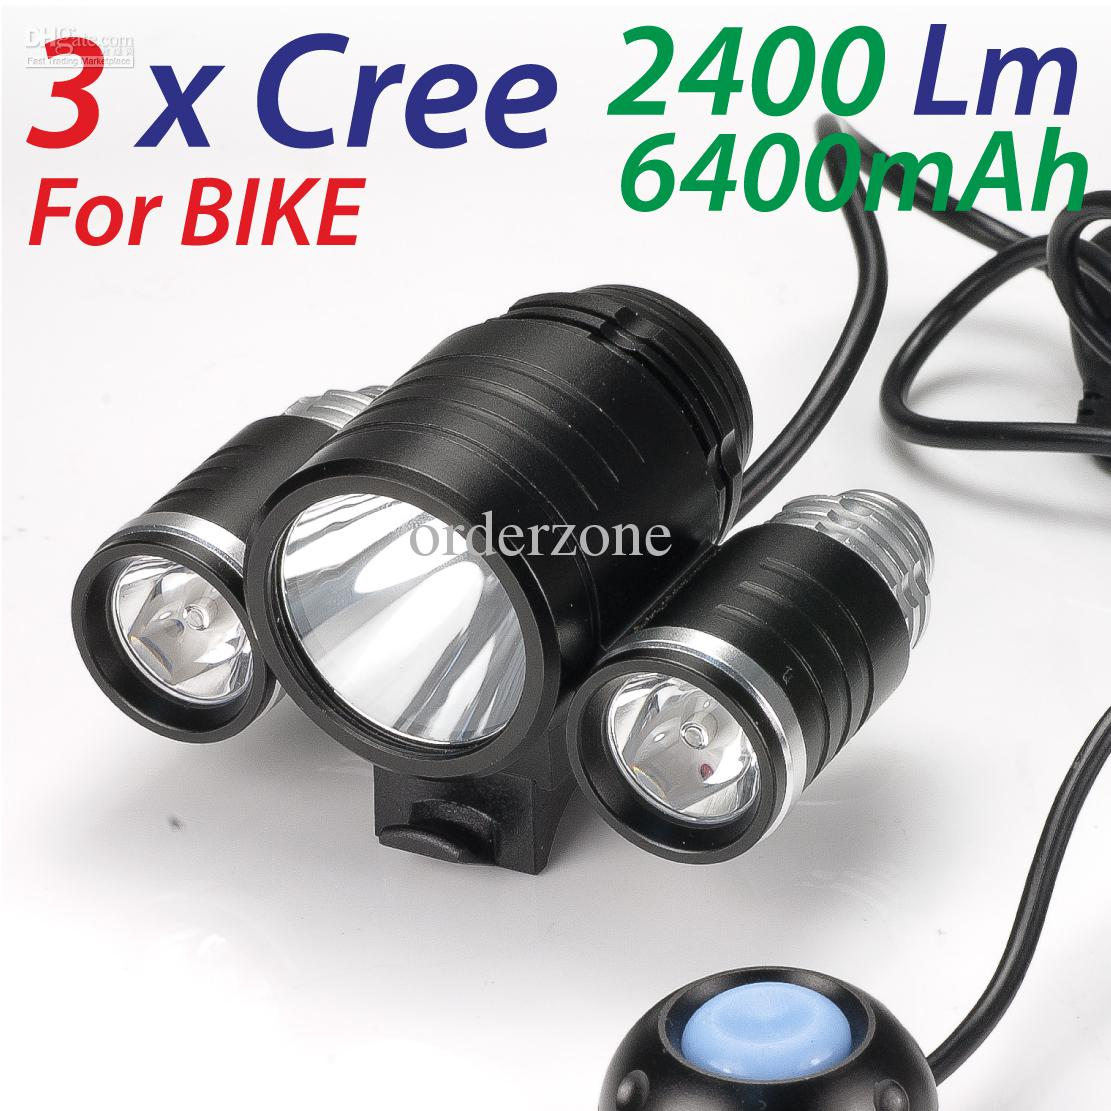 3x Cree Xm L T6 Led 2400lm Bike Bicycle Light Lamp Head Lamp Head